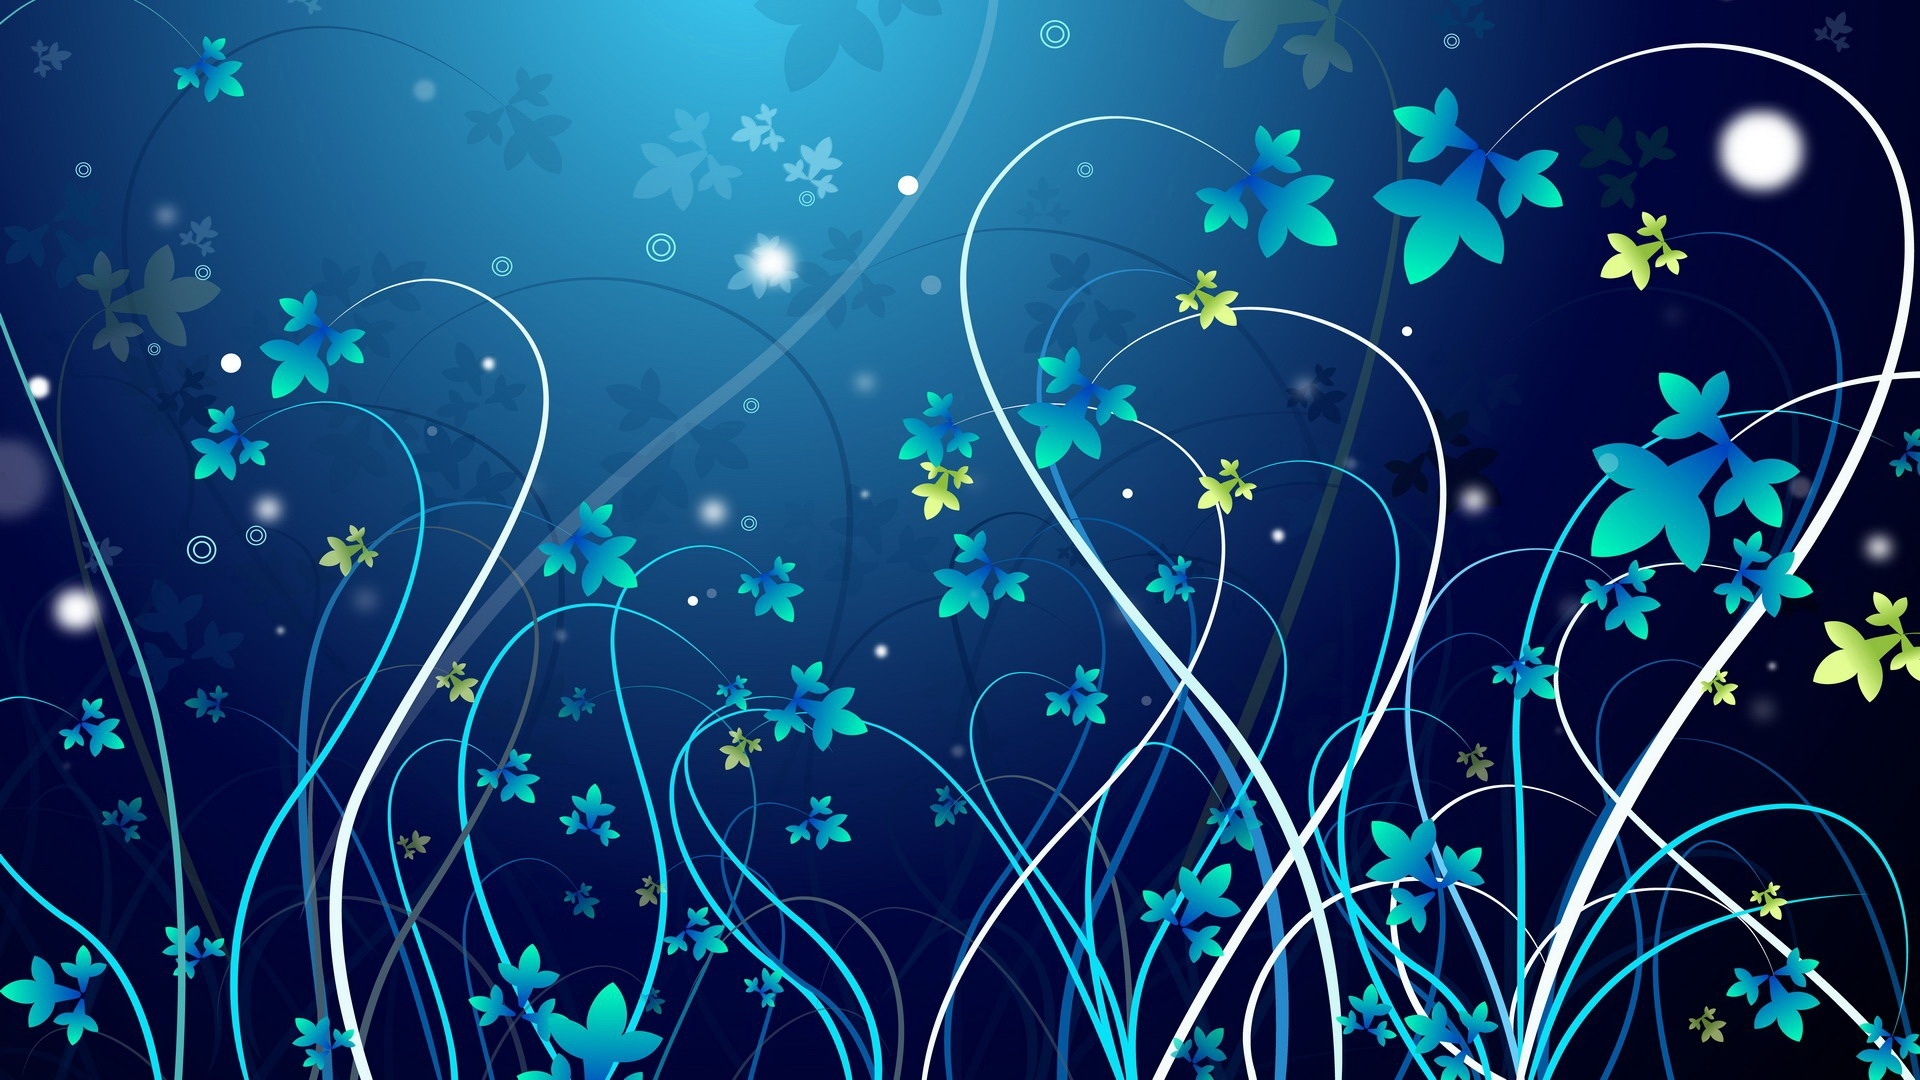 Green floral design vector graphic free vector graphics all free - Vector Flowers Wallpapers